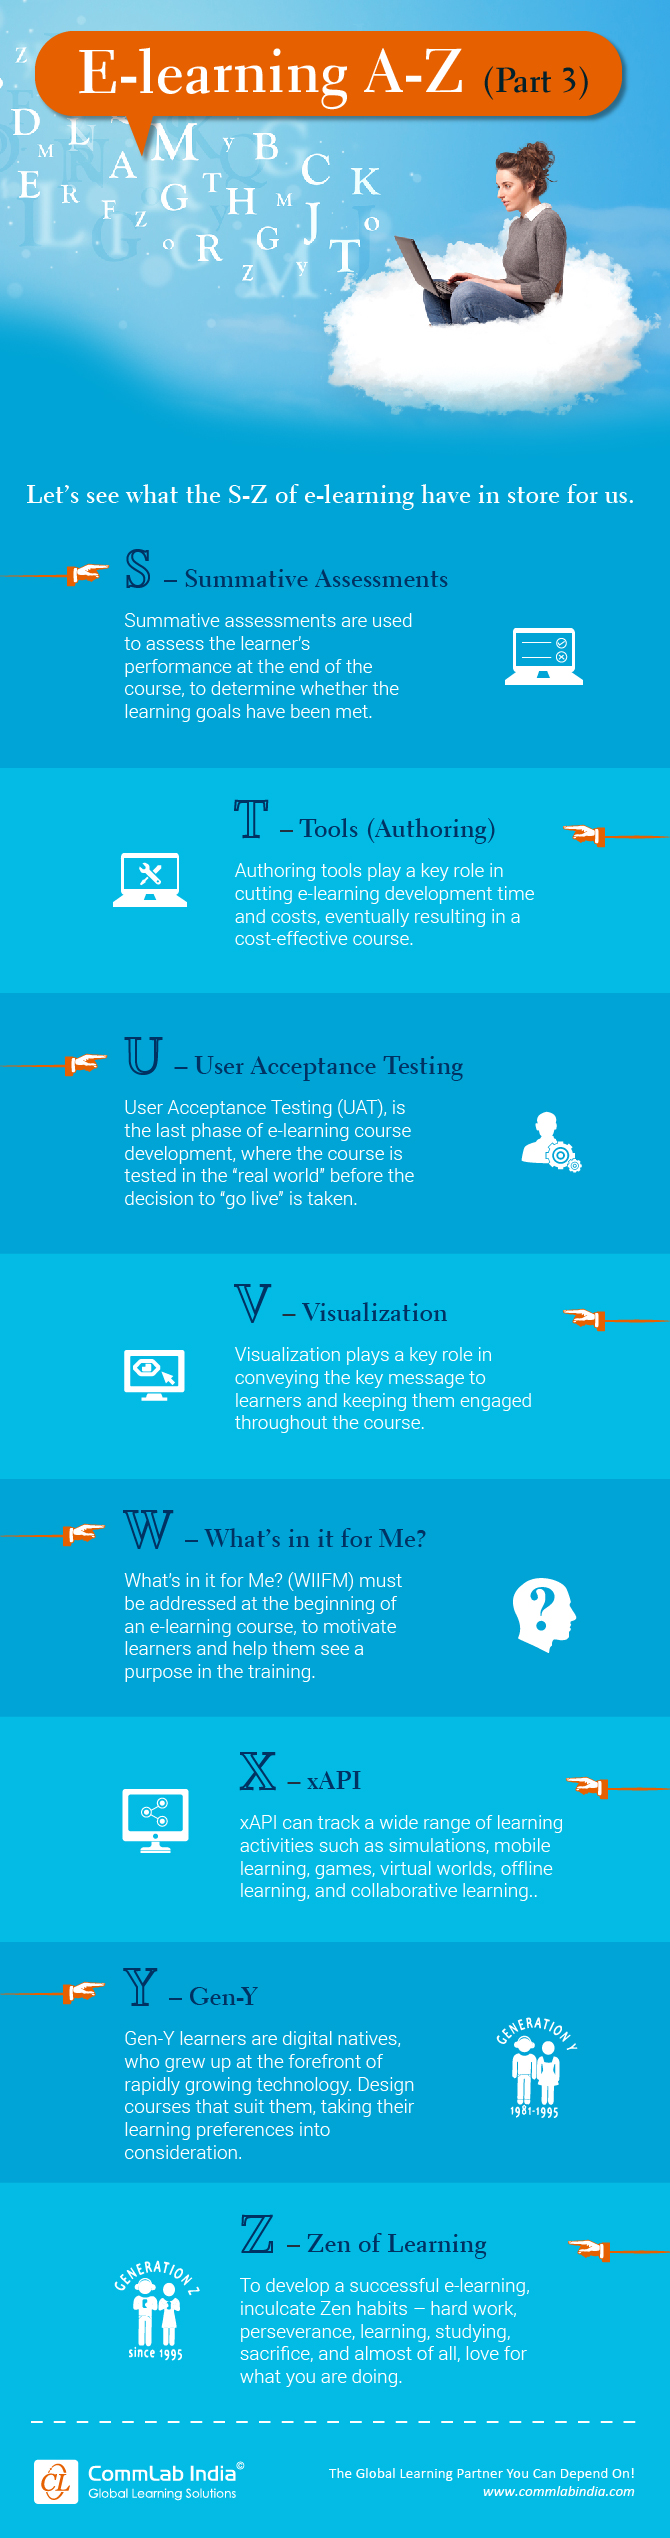 E-learning A-Z Terms: Part 3 [Infographic]